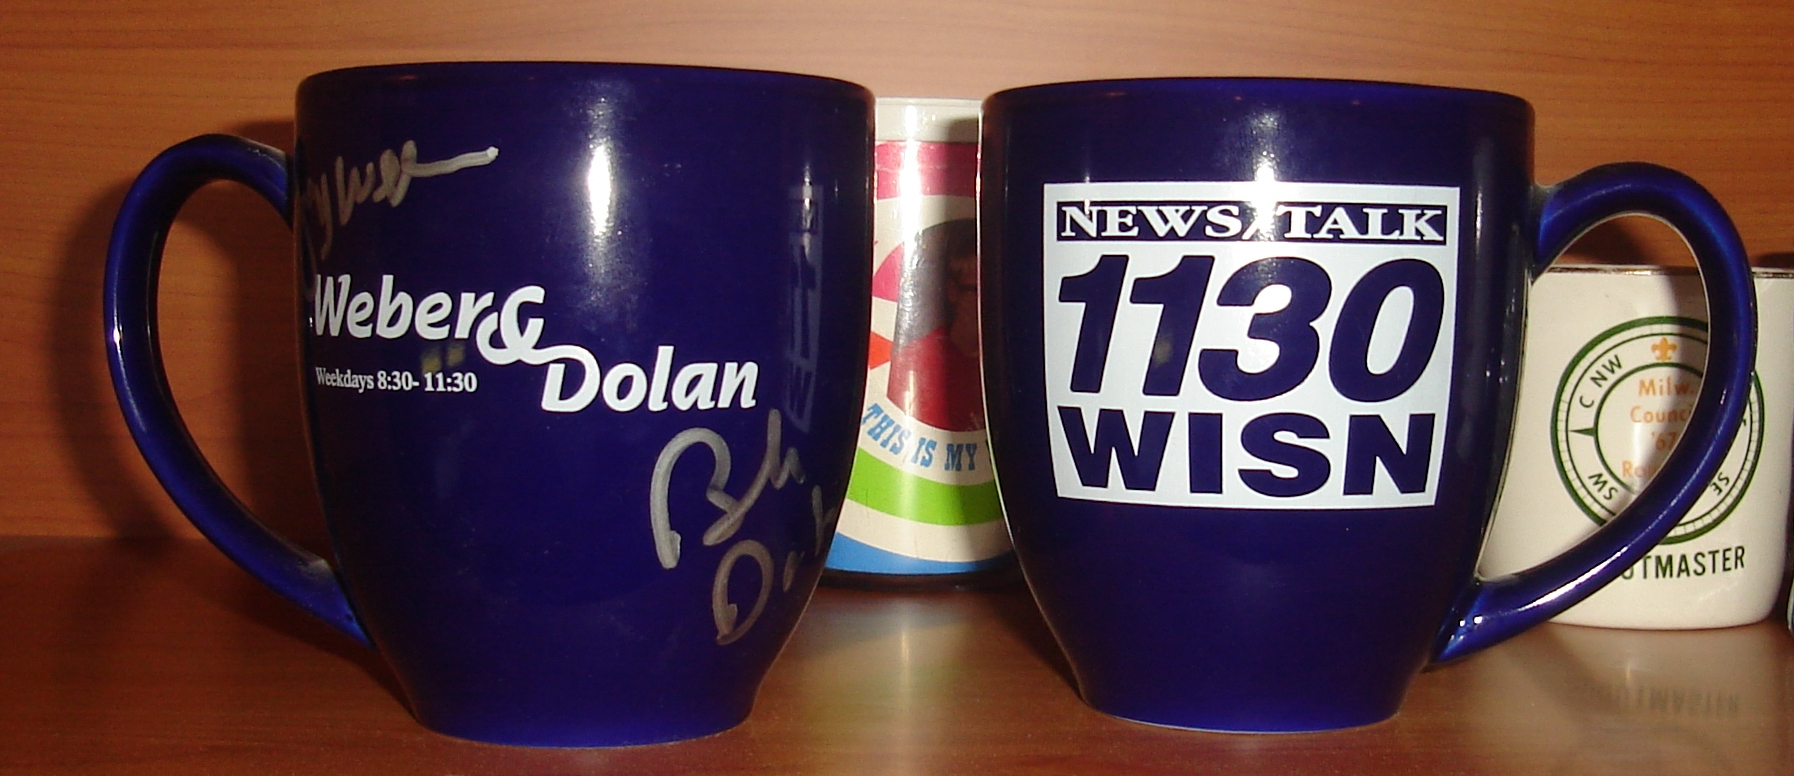 Weber and Dolan signed mugs